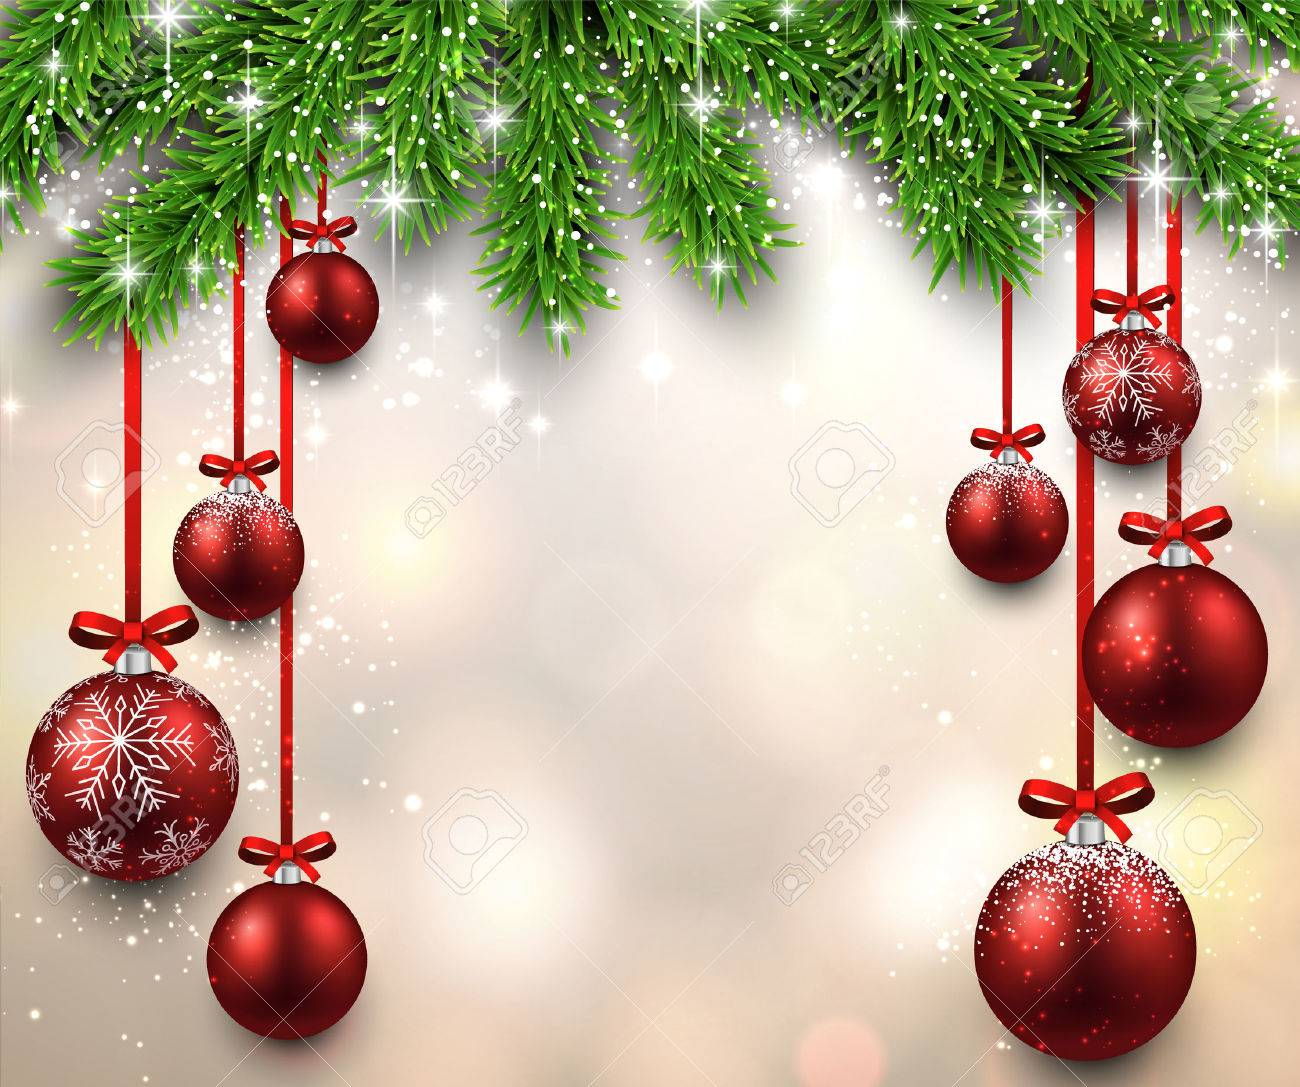 Christmas illustration with fir twigs and red balls. Vector background. - 33871038